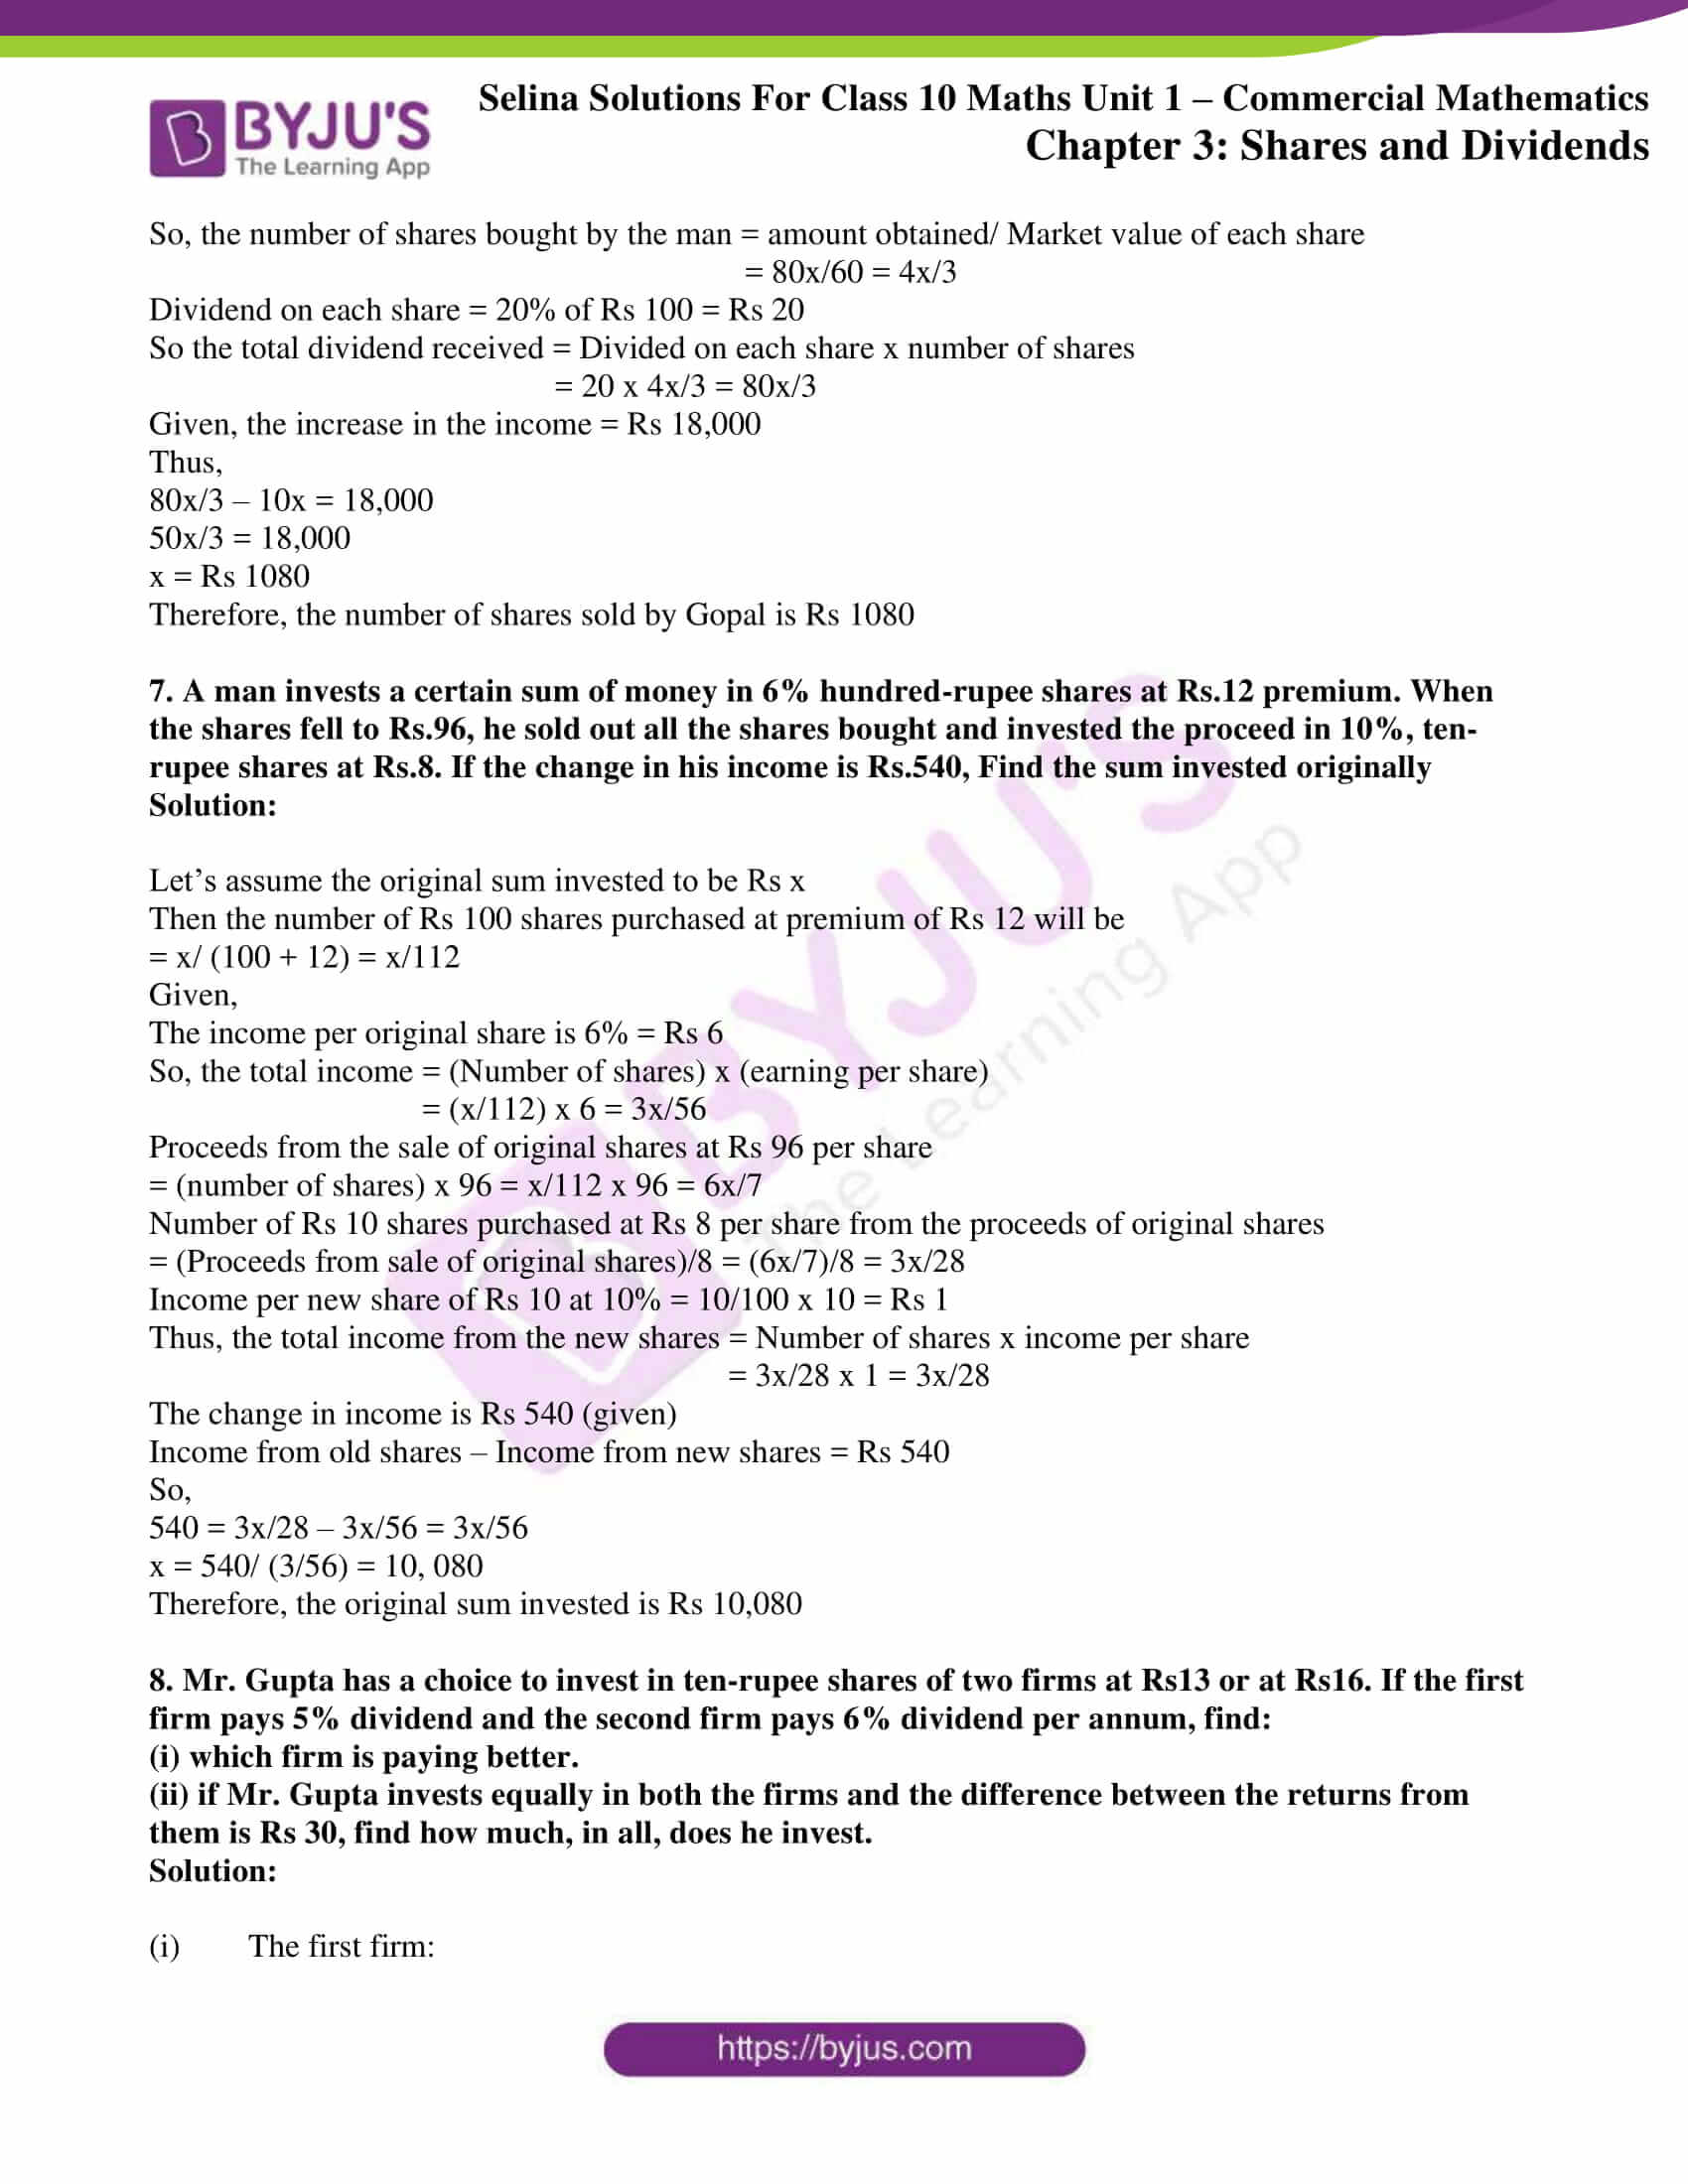 selina solution concise maths class 10 chapter 3c